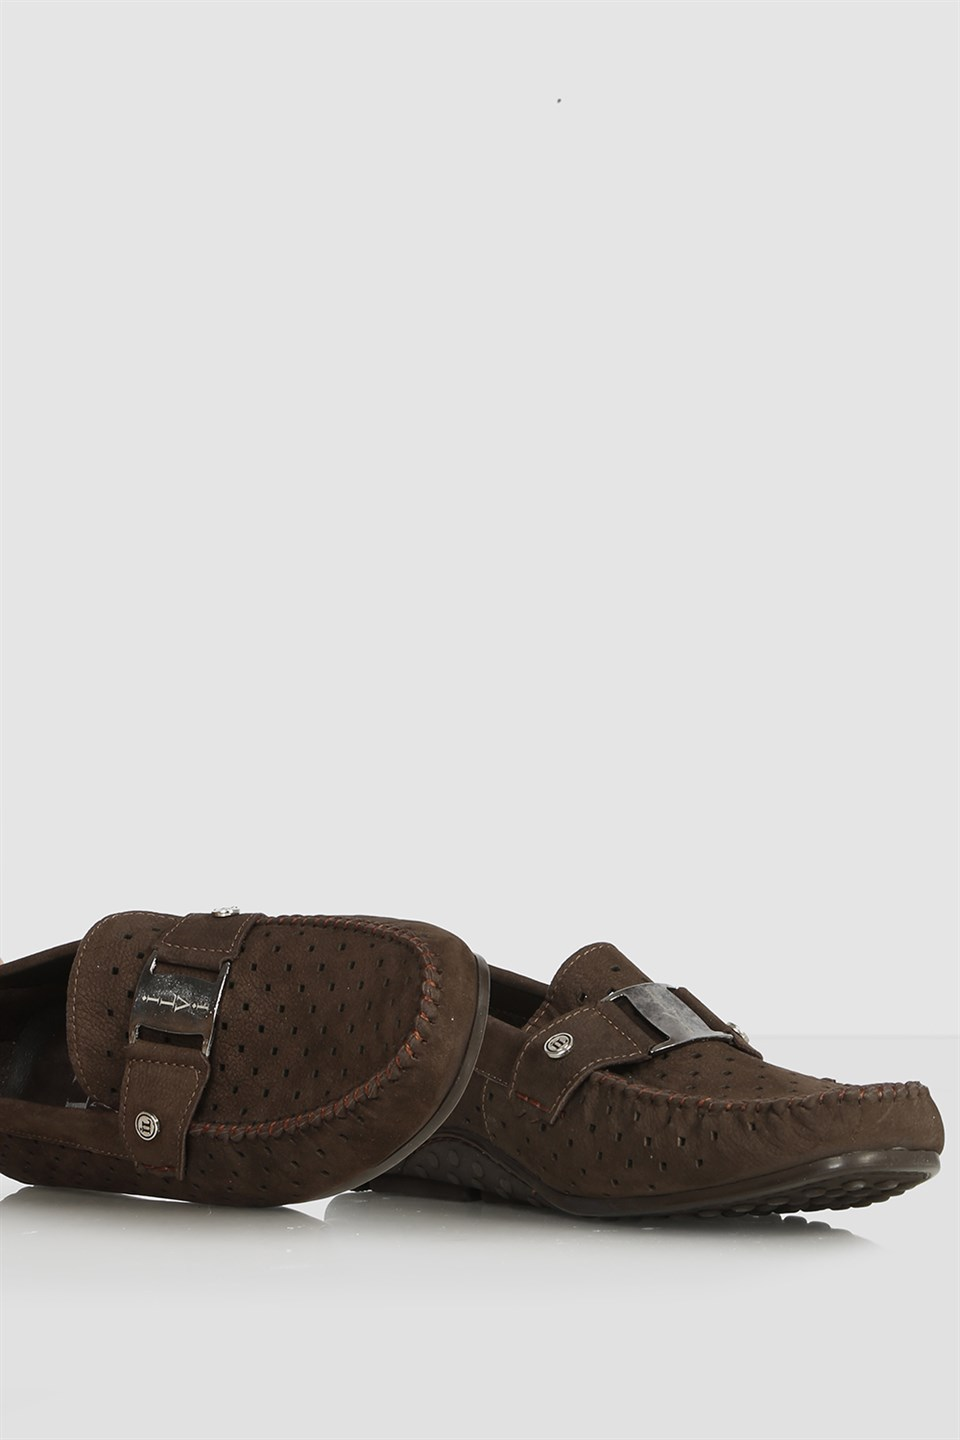 İLVİ Melkor Men's Moccasin Brown Nubuck